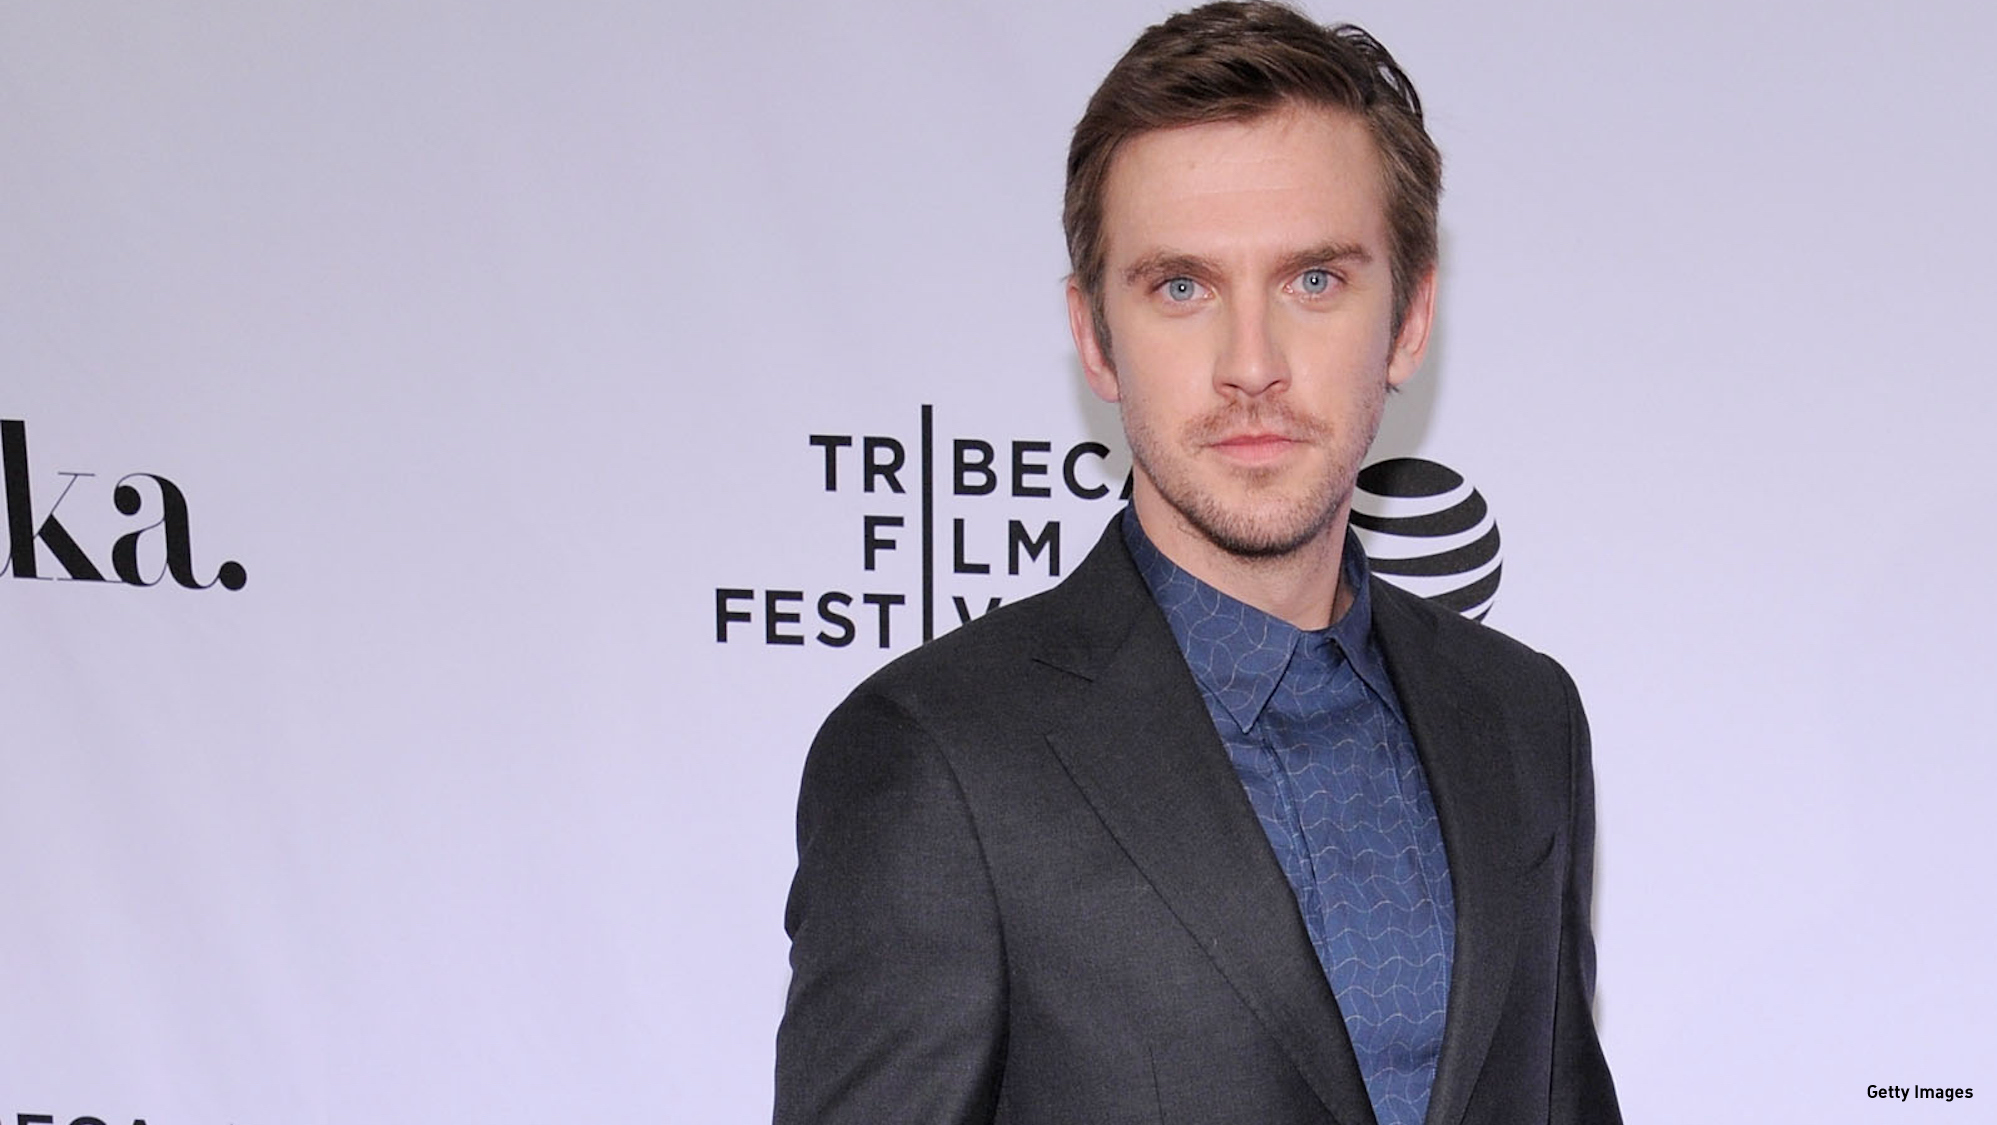 FIRST LOOK: Dan Stevens as the Prince in 'Beauty and the Beast ...: www.bbcamerica.com/anglophenia/2016/08/first-look-dan-stevens-as...